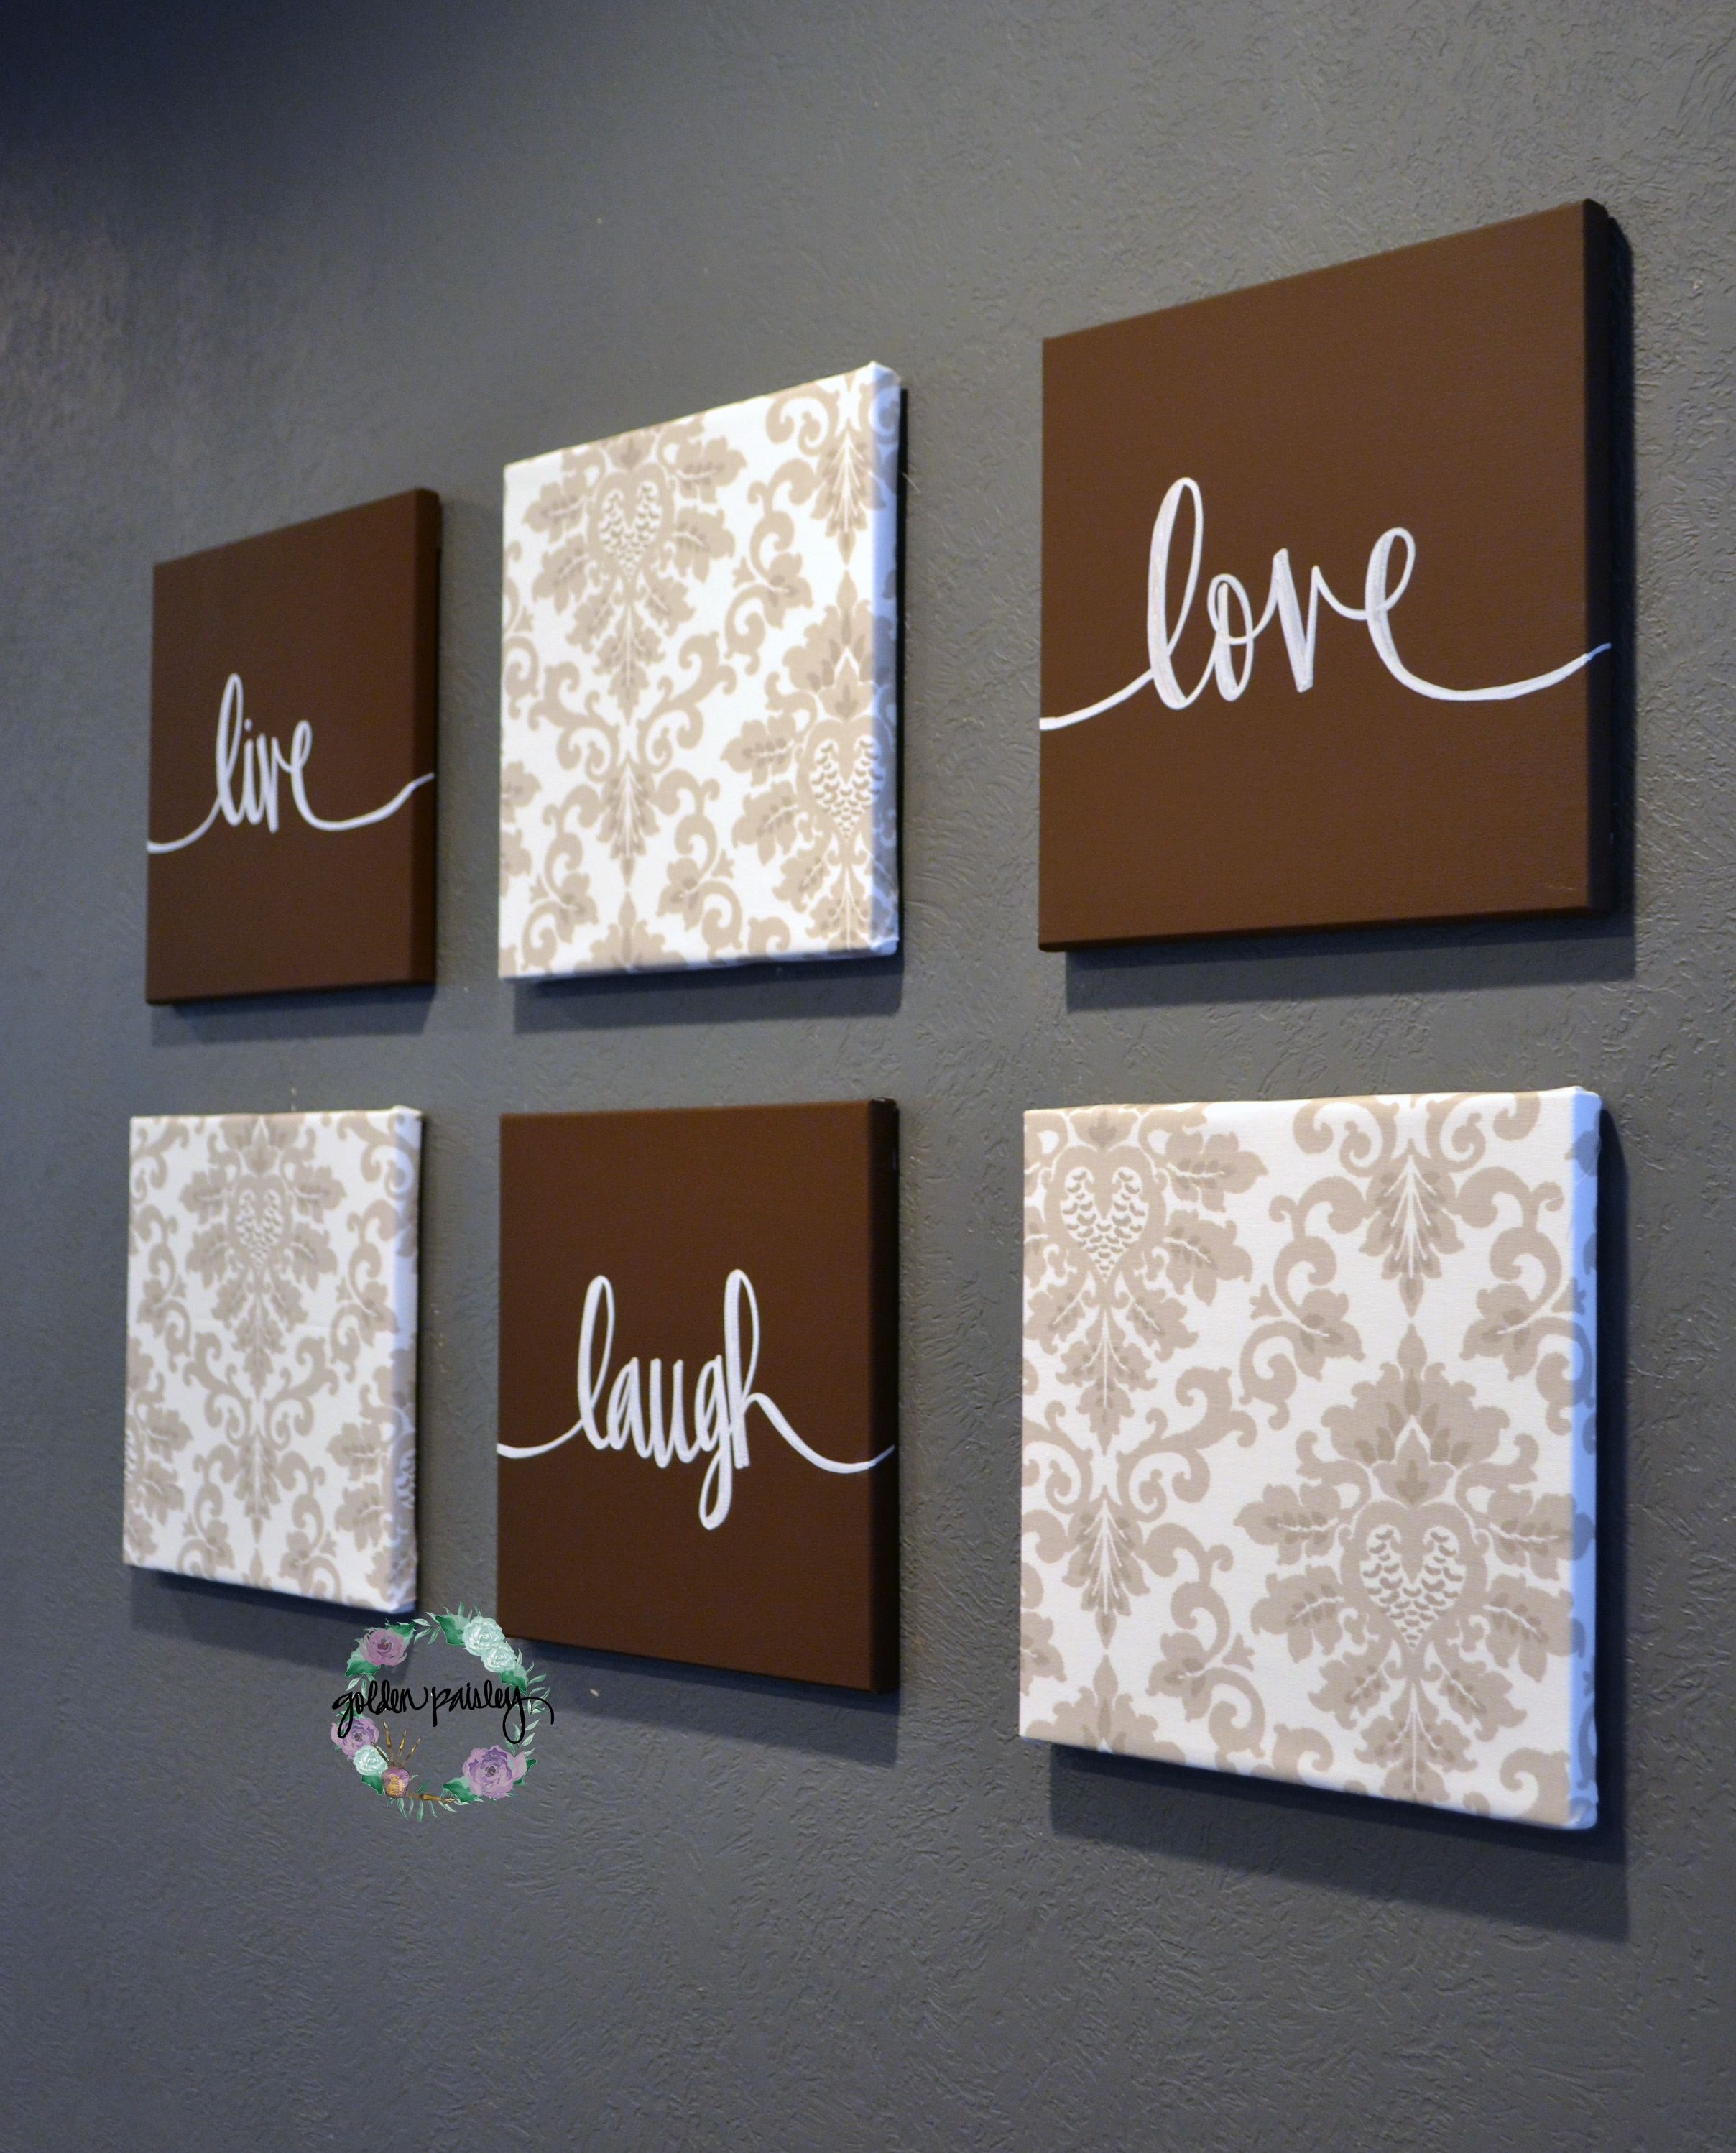 Brown Beige Live Laugh Love Set Intended For Newest Live Laugh Love Canvas Wall Art (View 4 of 15)